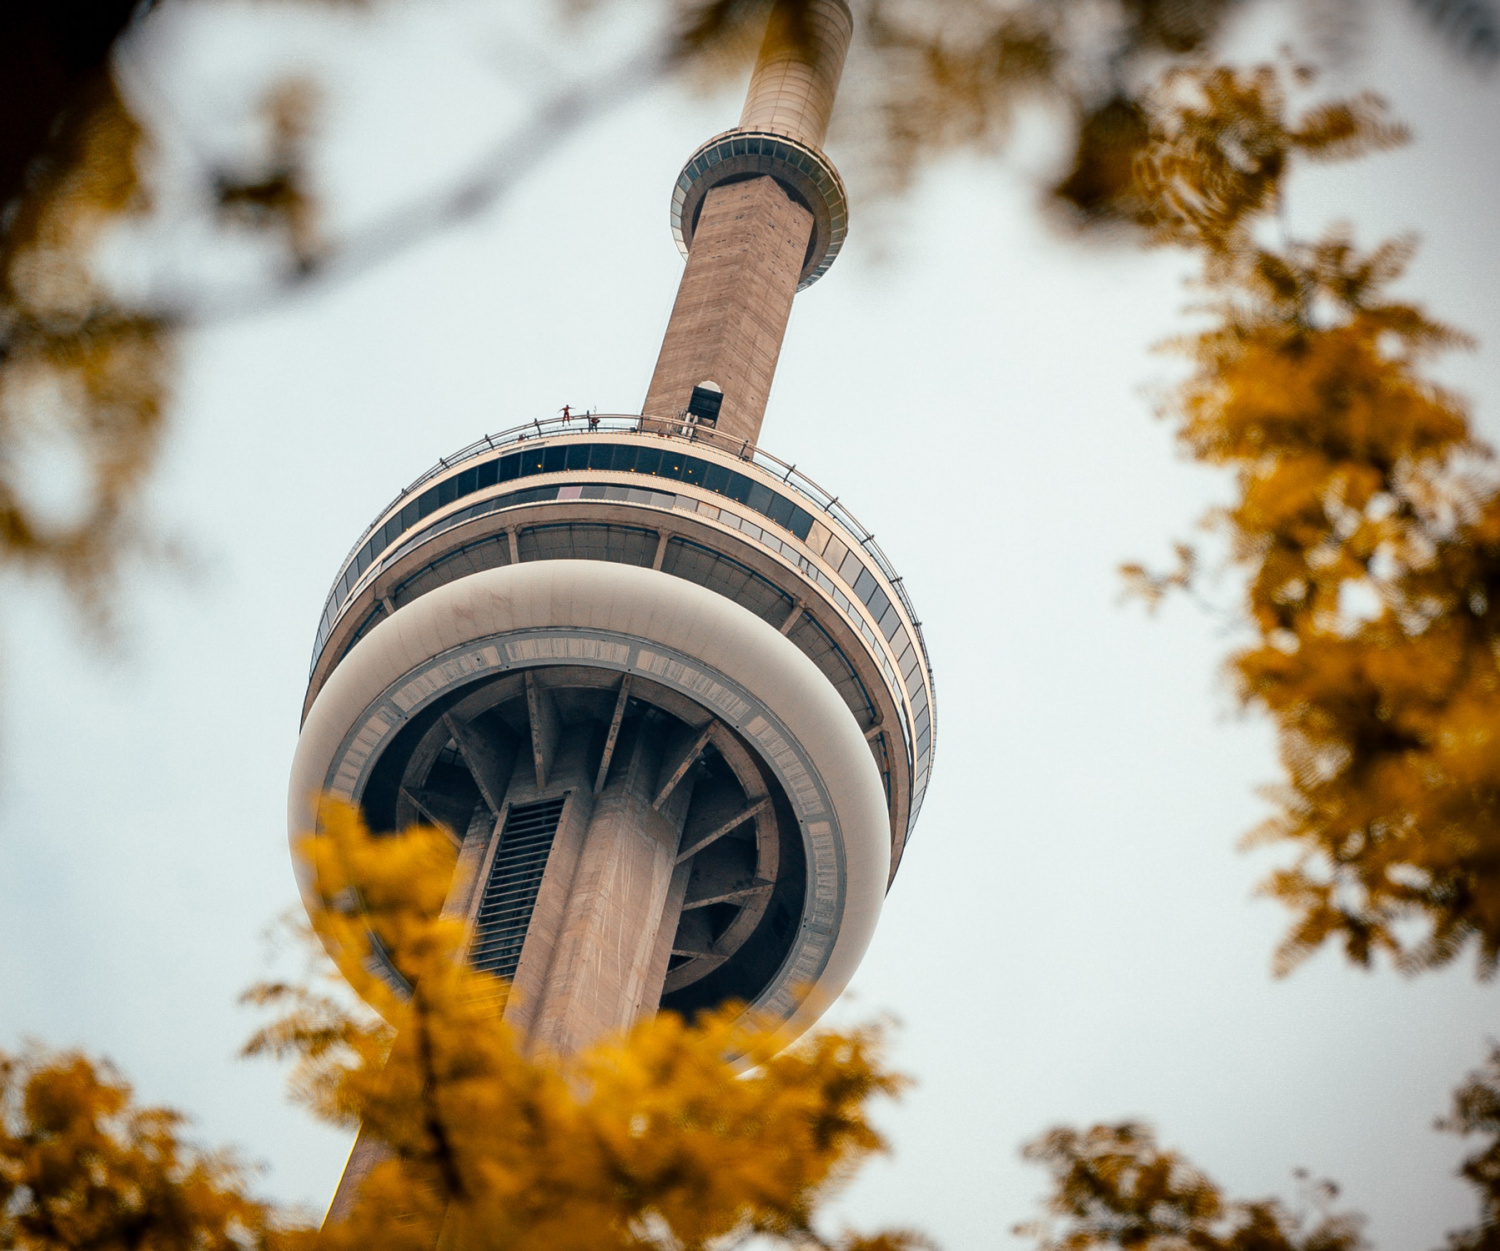 Toronto this October | The CN Tower surrounded by autumn leaves